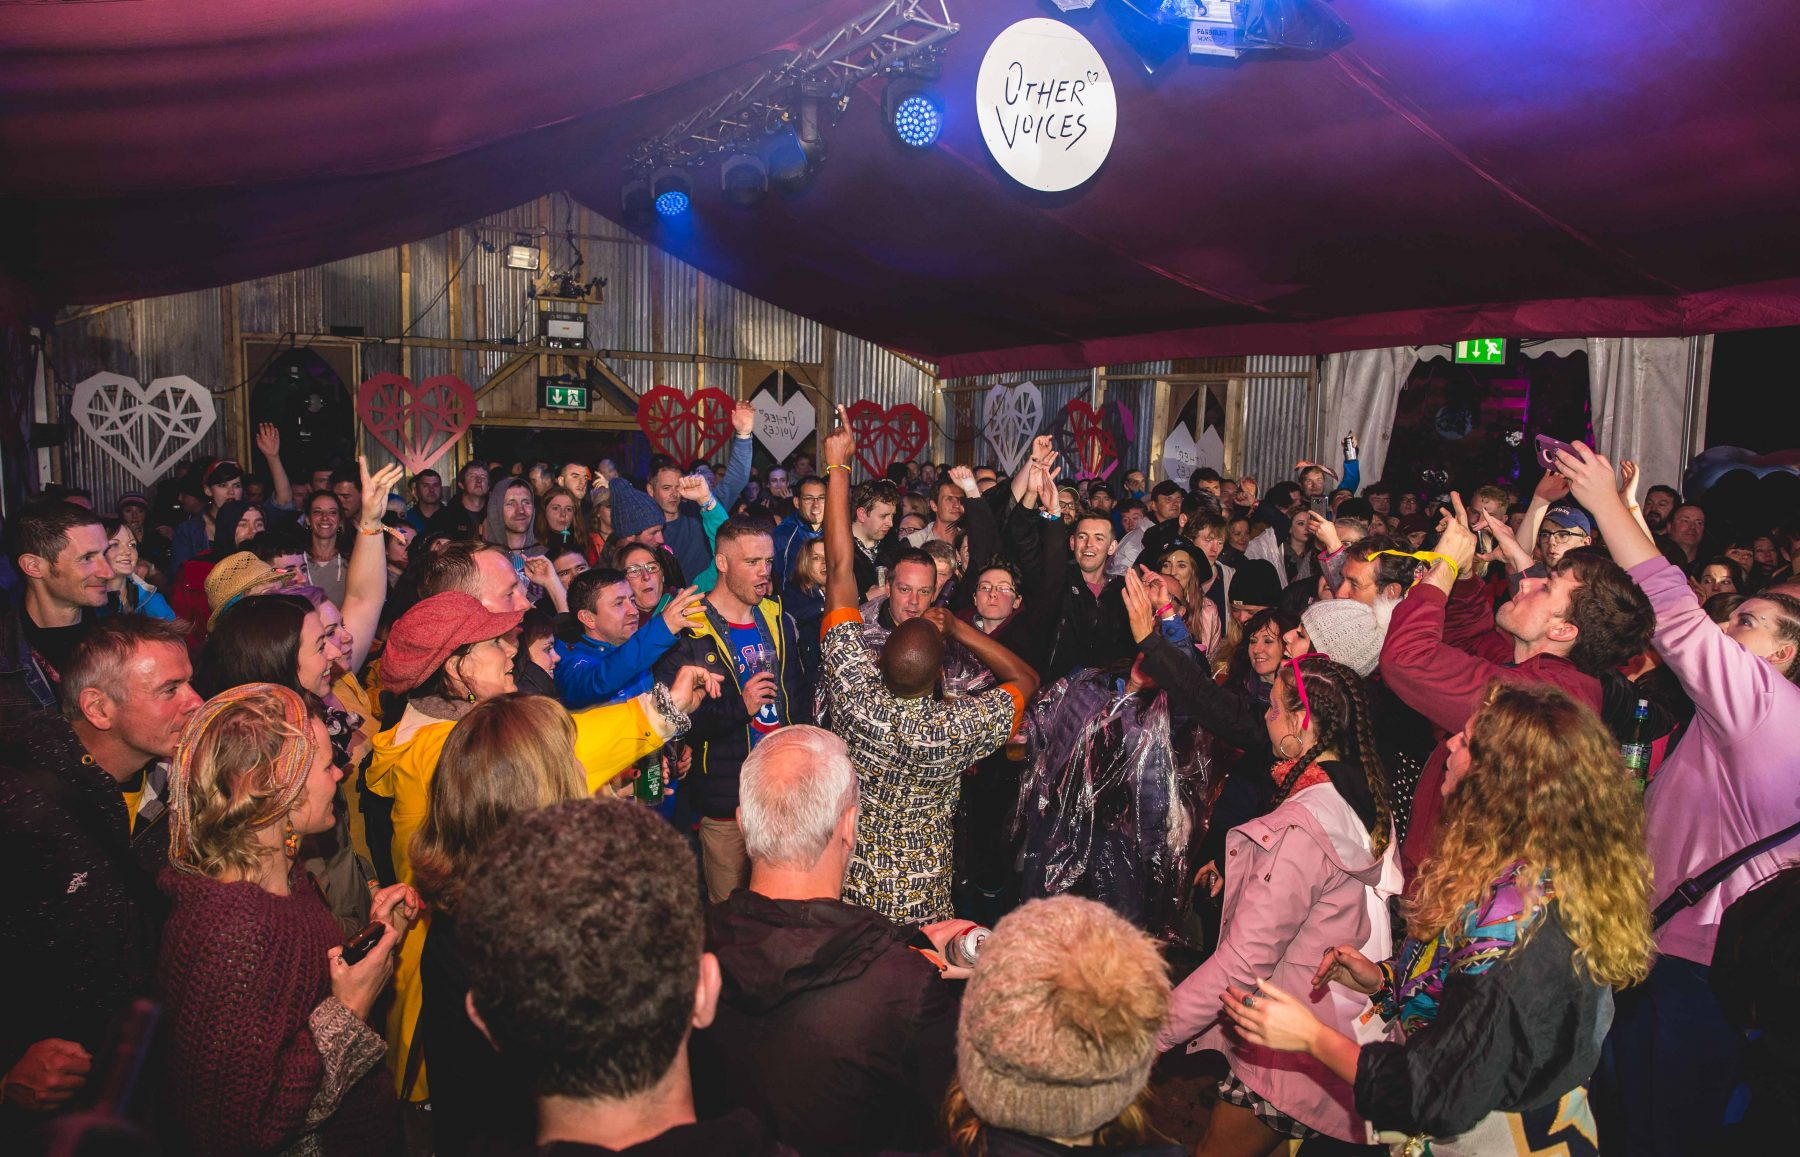 Rusangano Family_Other Voices_Electric Picnic 2017